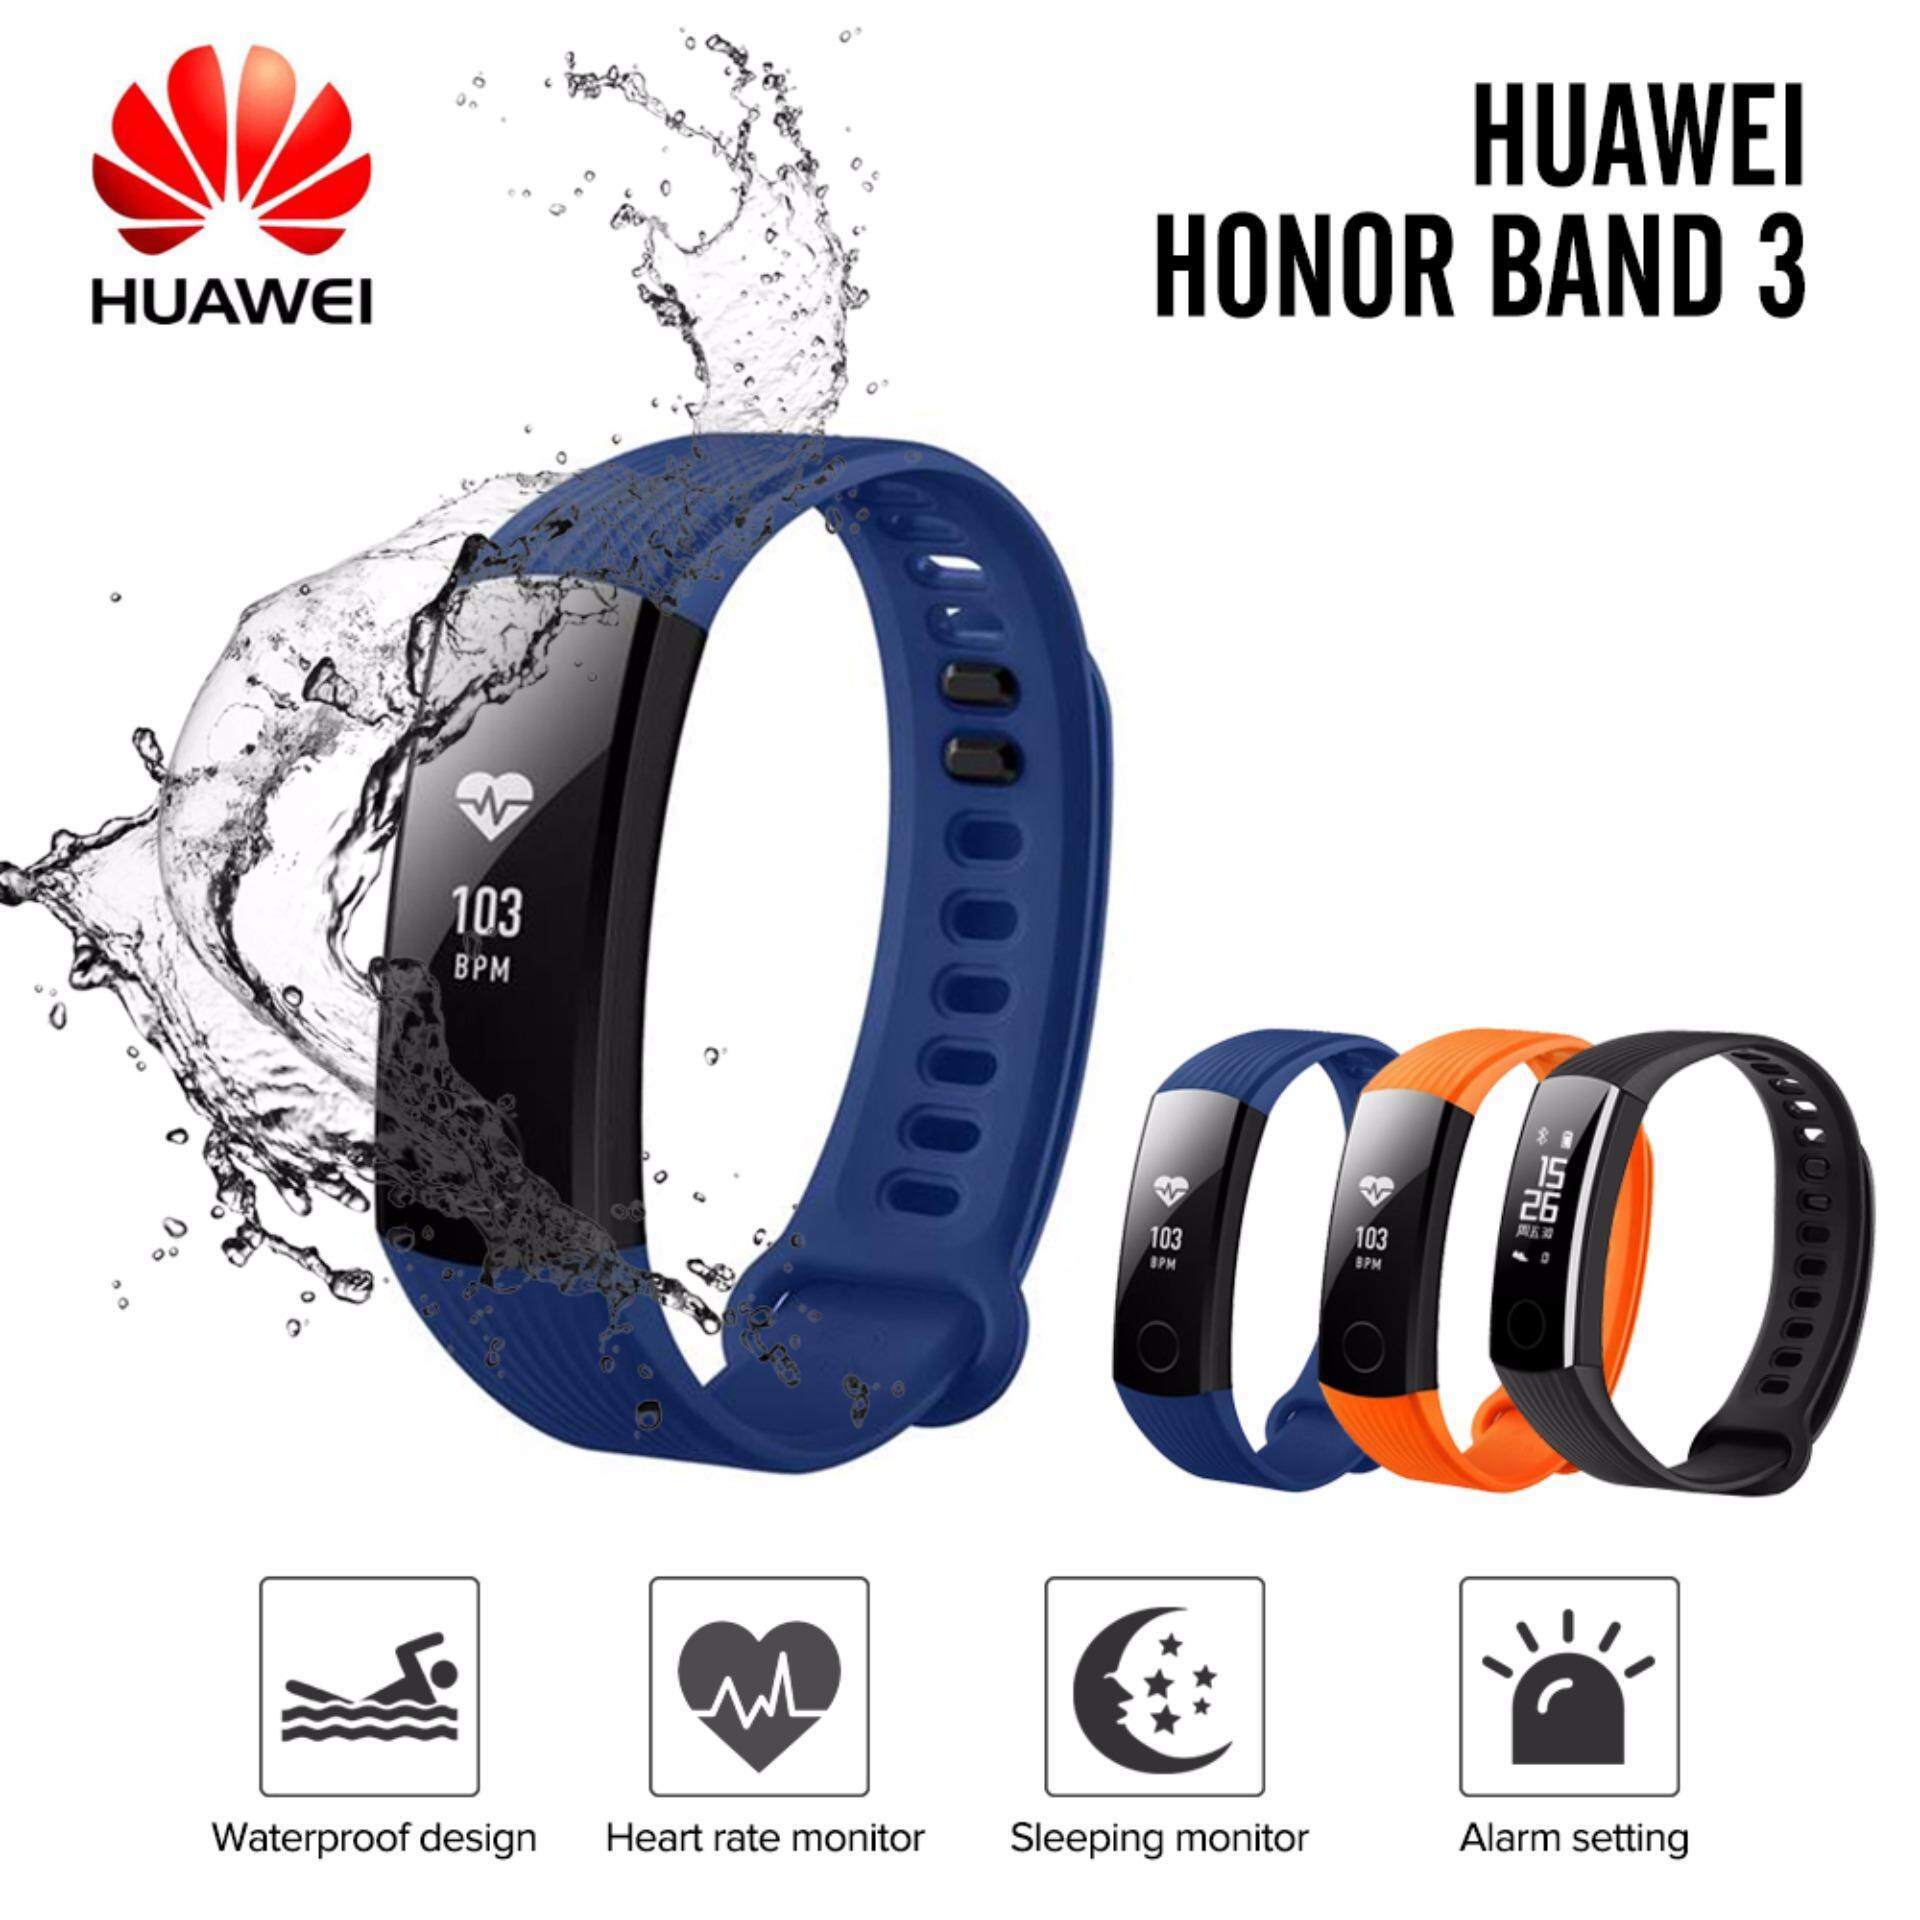 (50m Waterproof) Original HUAWEI Honor Band 3 Smartband Heart Rate Monitor Calories Consumption Pedometer Smart Bracelet Wristband for Swimming Fitness Tracker for Android iOS